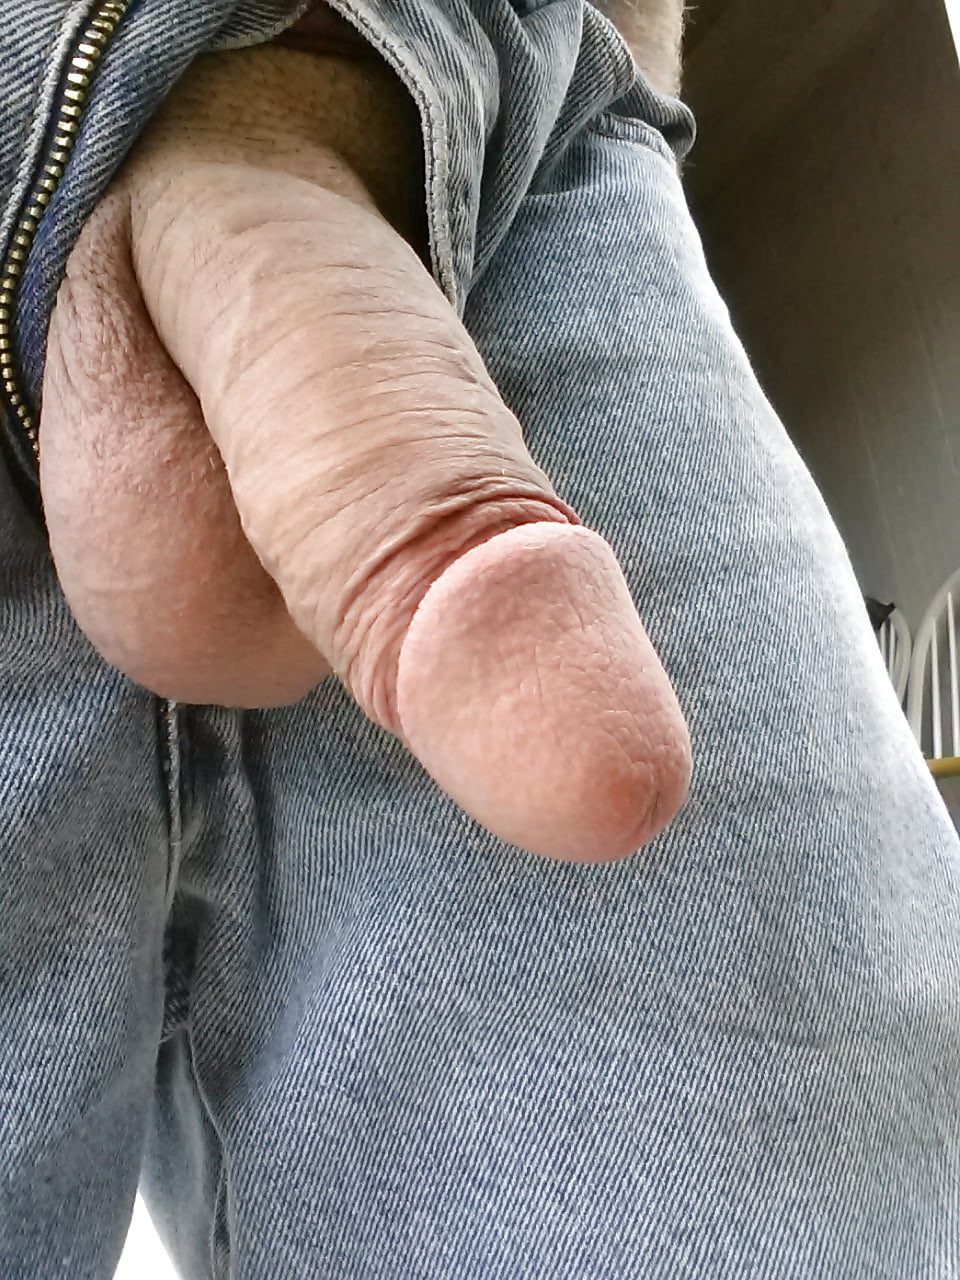 Rich stepbrothers taste eachothers cocks out of boredom